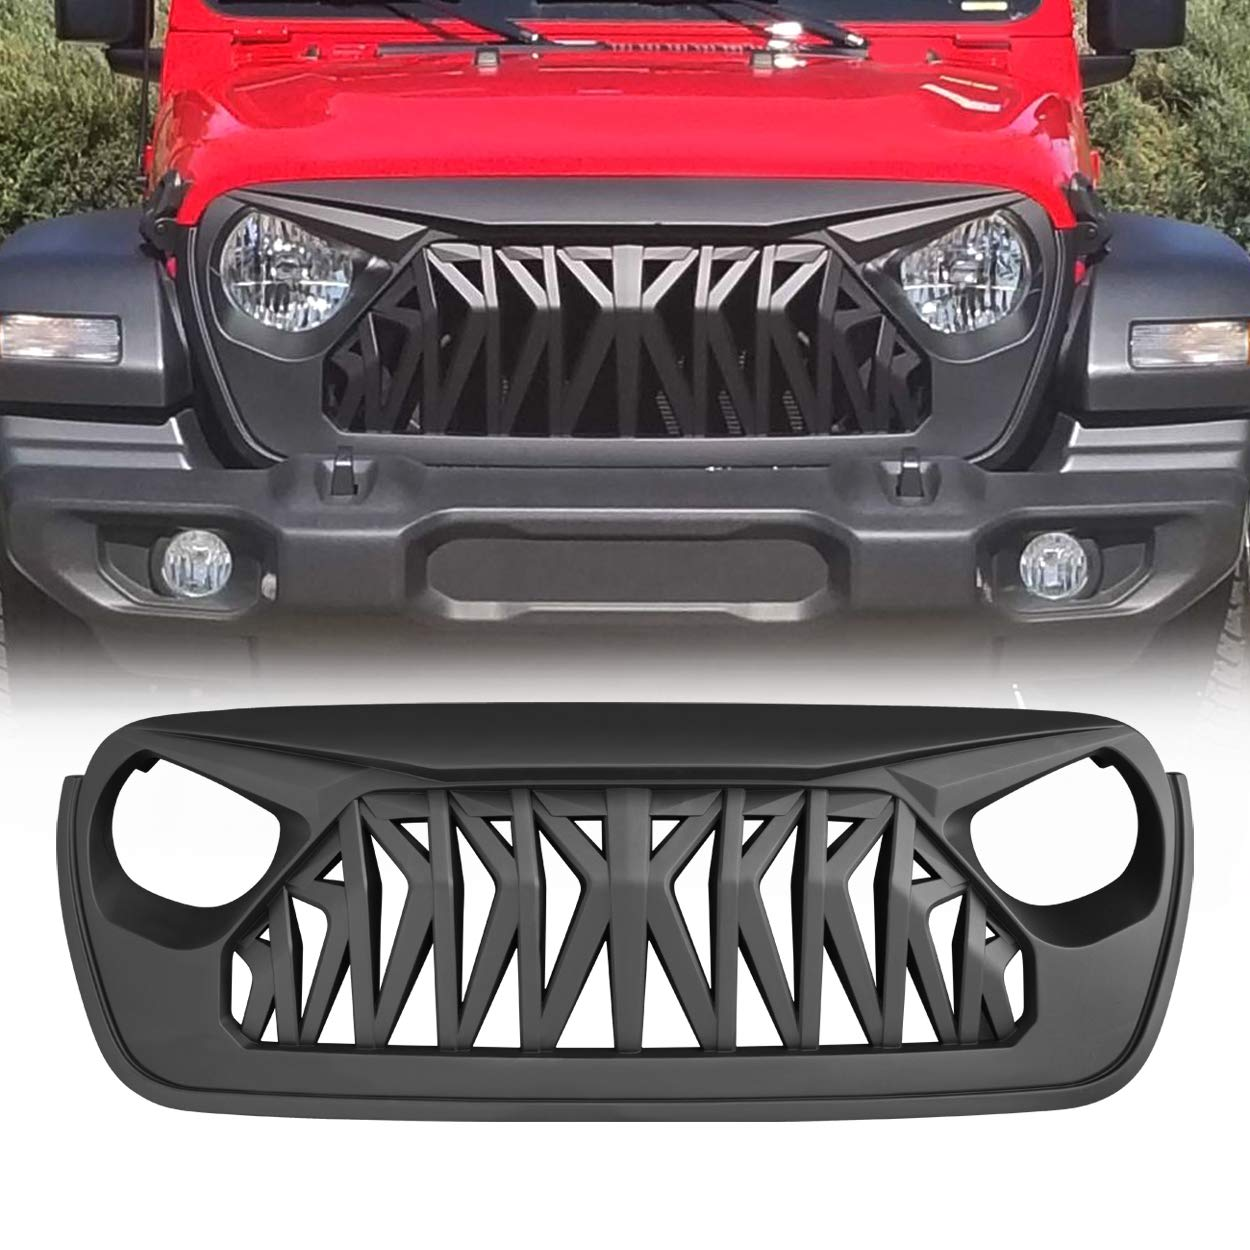 Newest Upgraded Style Modifying Front Shark Grille for 2018 2019 Jeep Wrangler JL JLU Rubicon Unlimited Sahara Sport Accessories Matte Black Grill